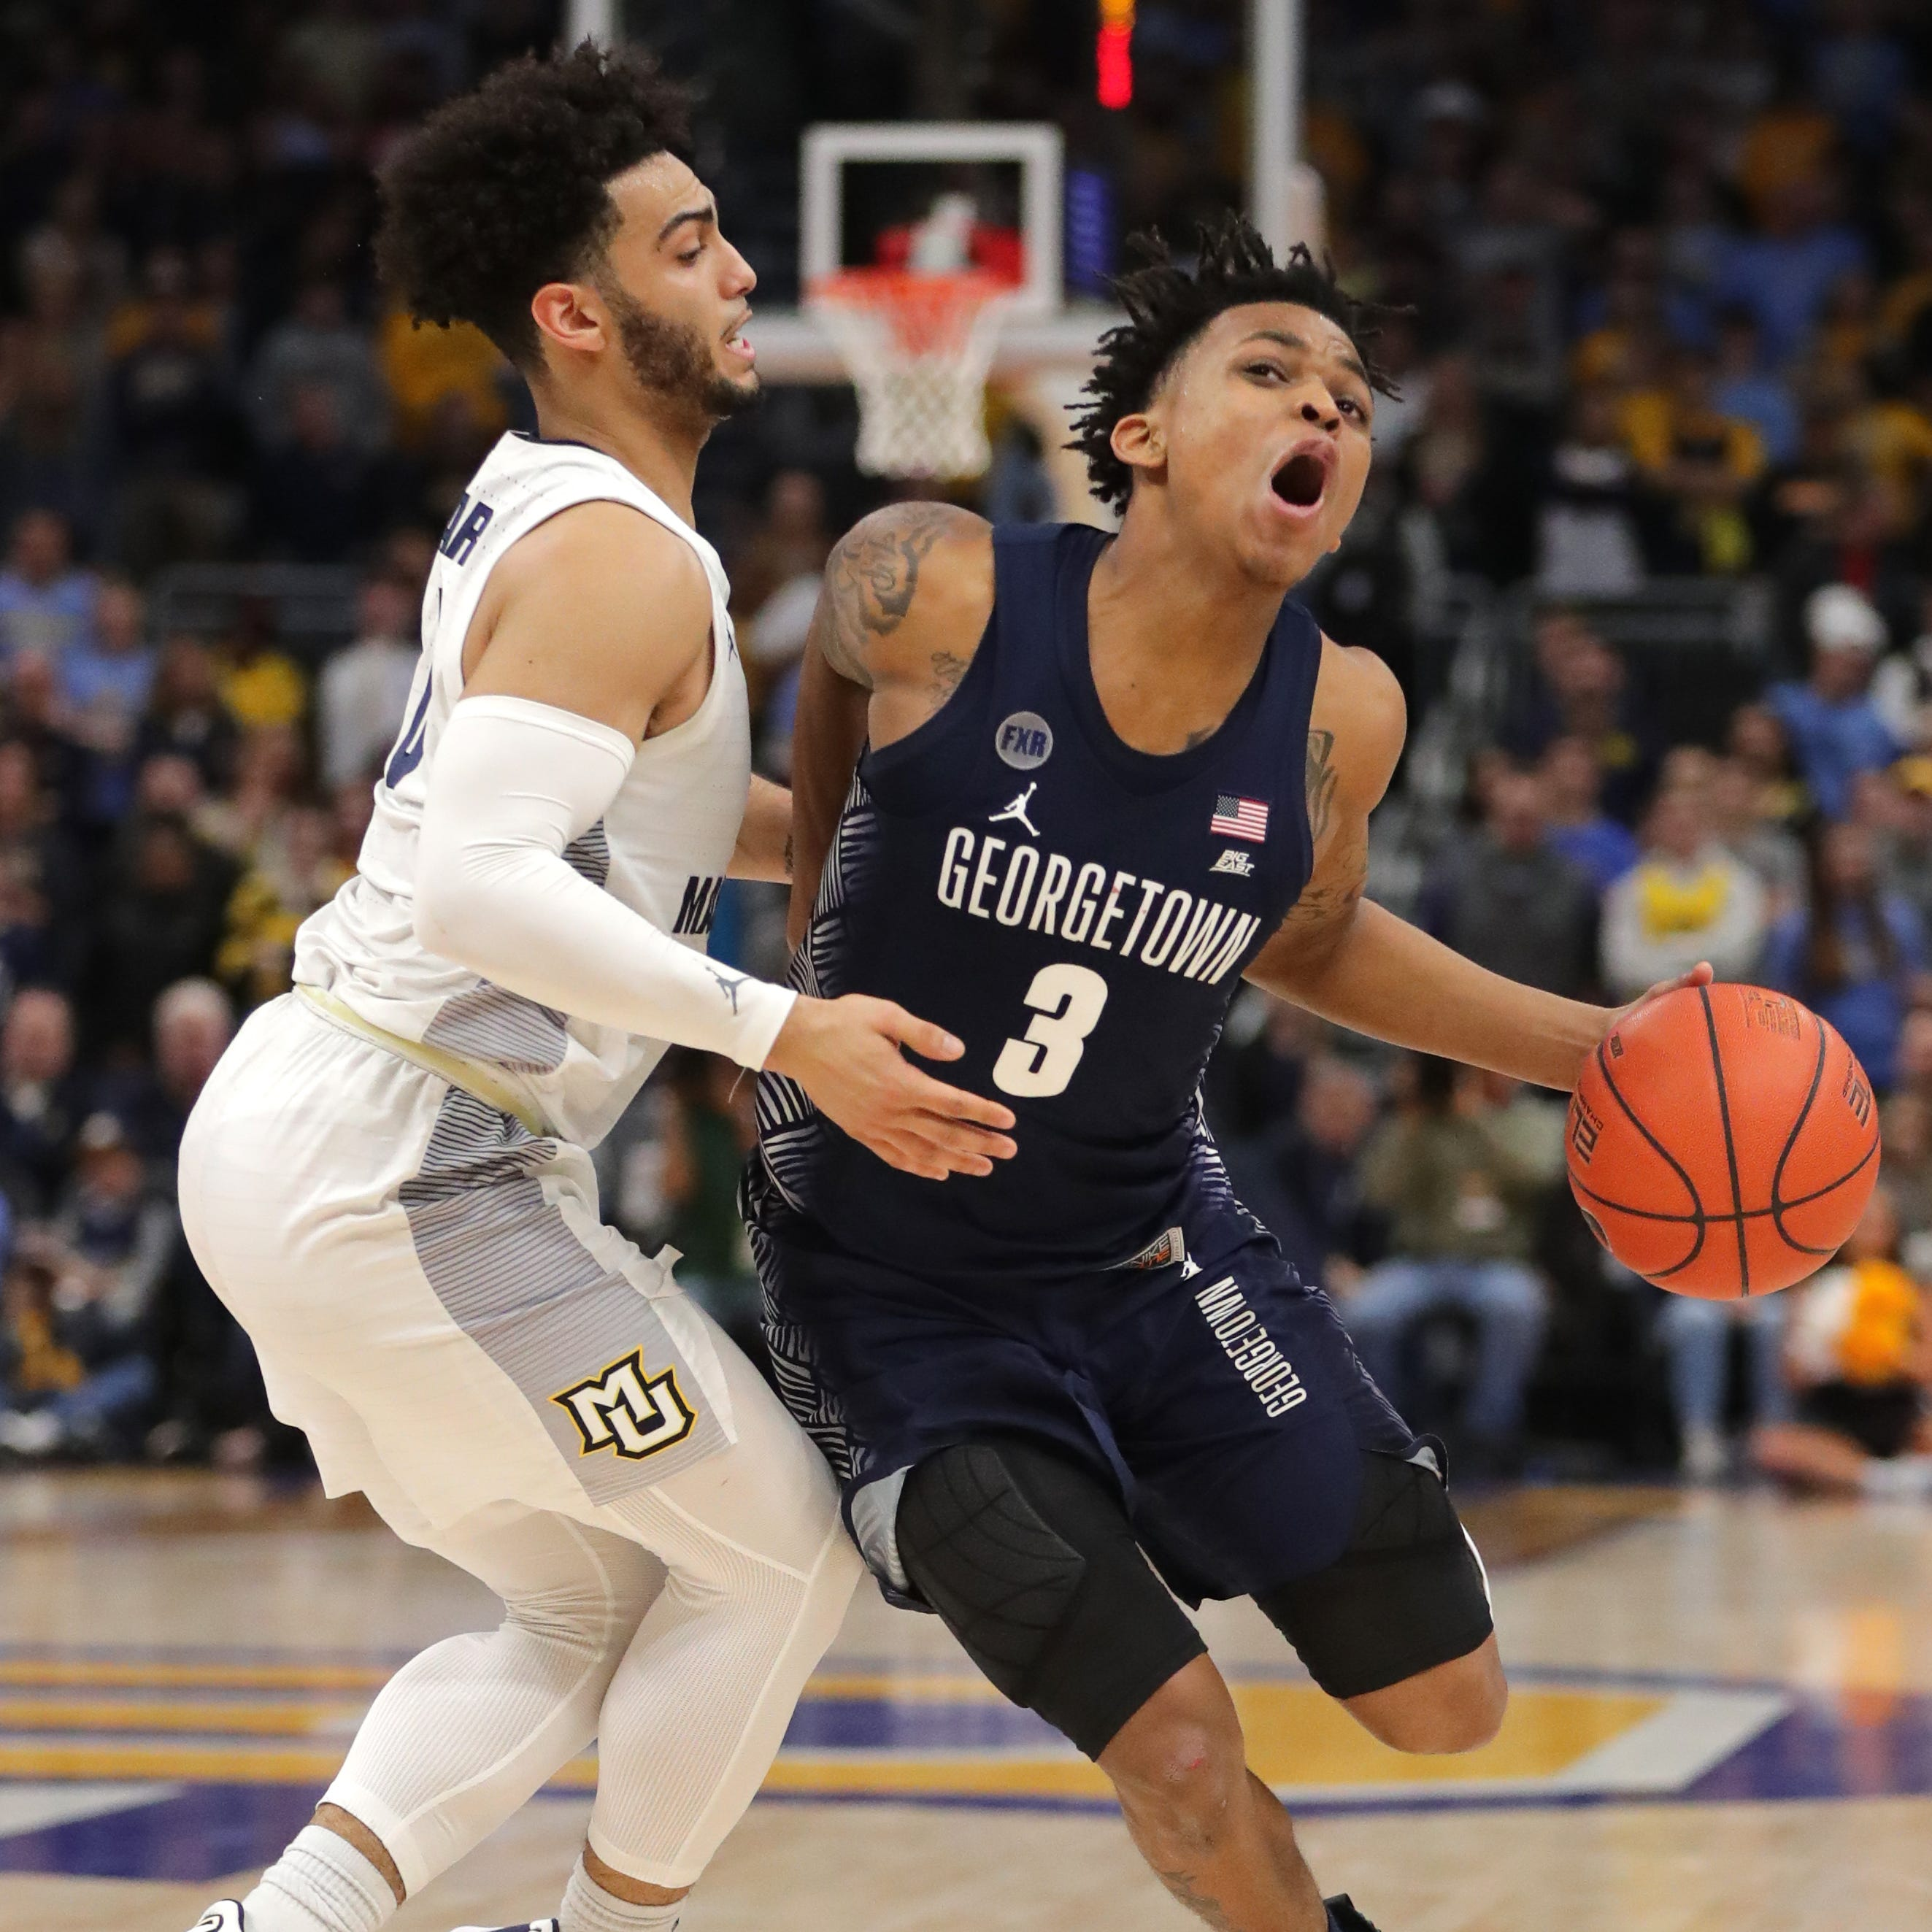 Georgetown 86, Marquette 84: The regular season ends with a troubling four-game skid